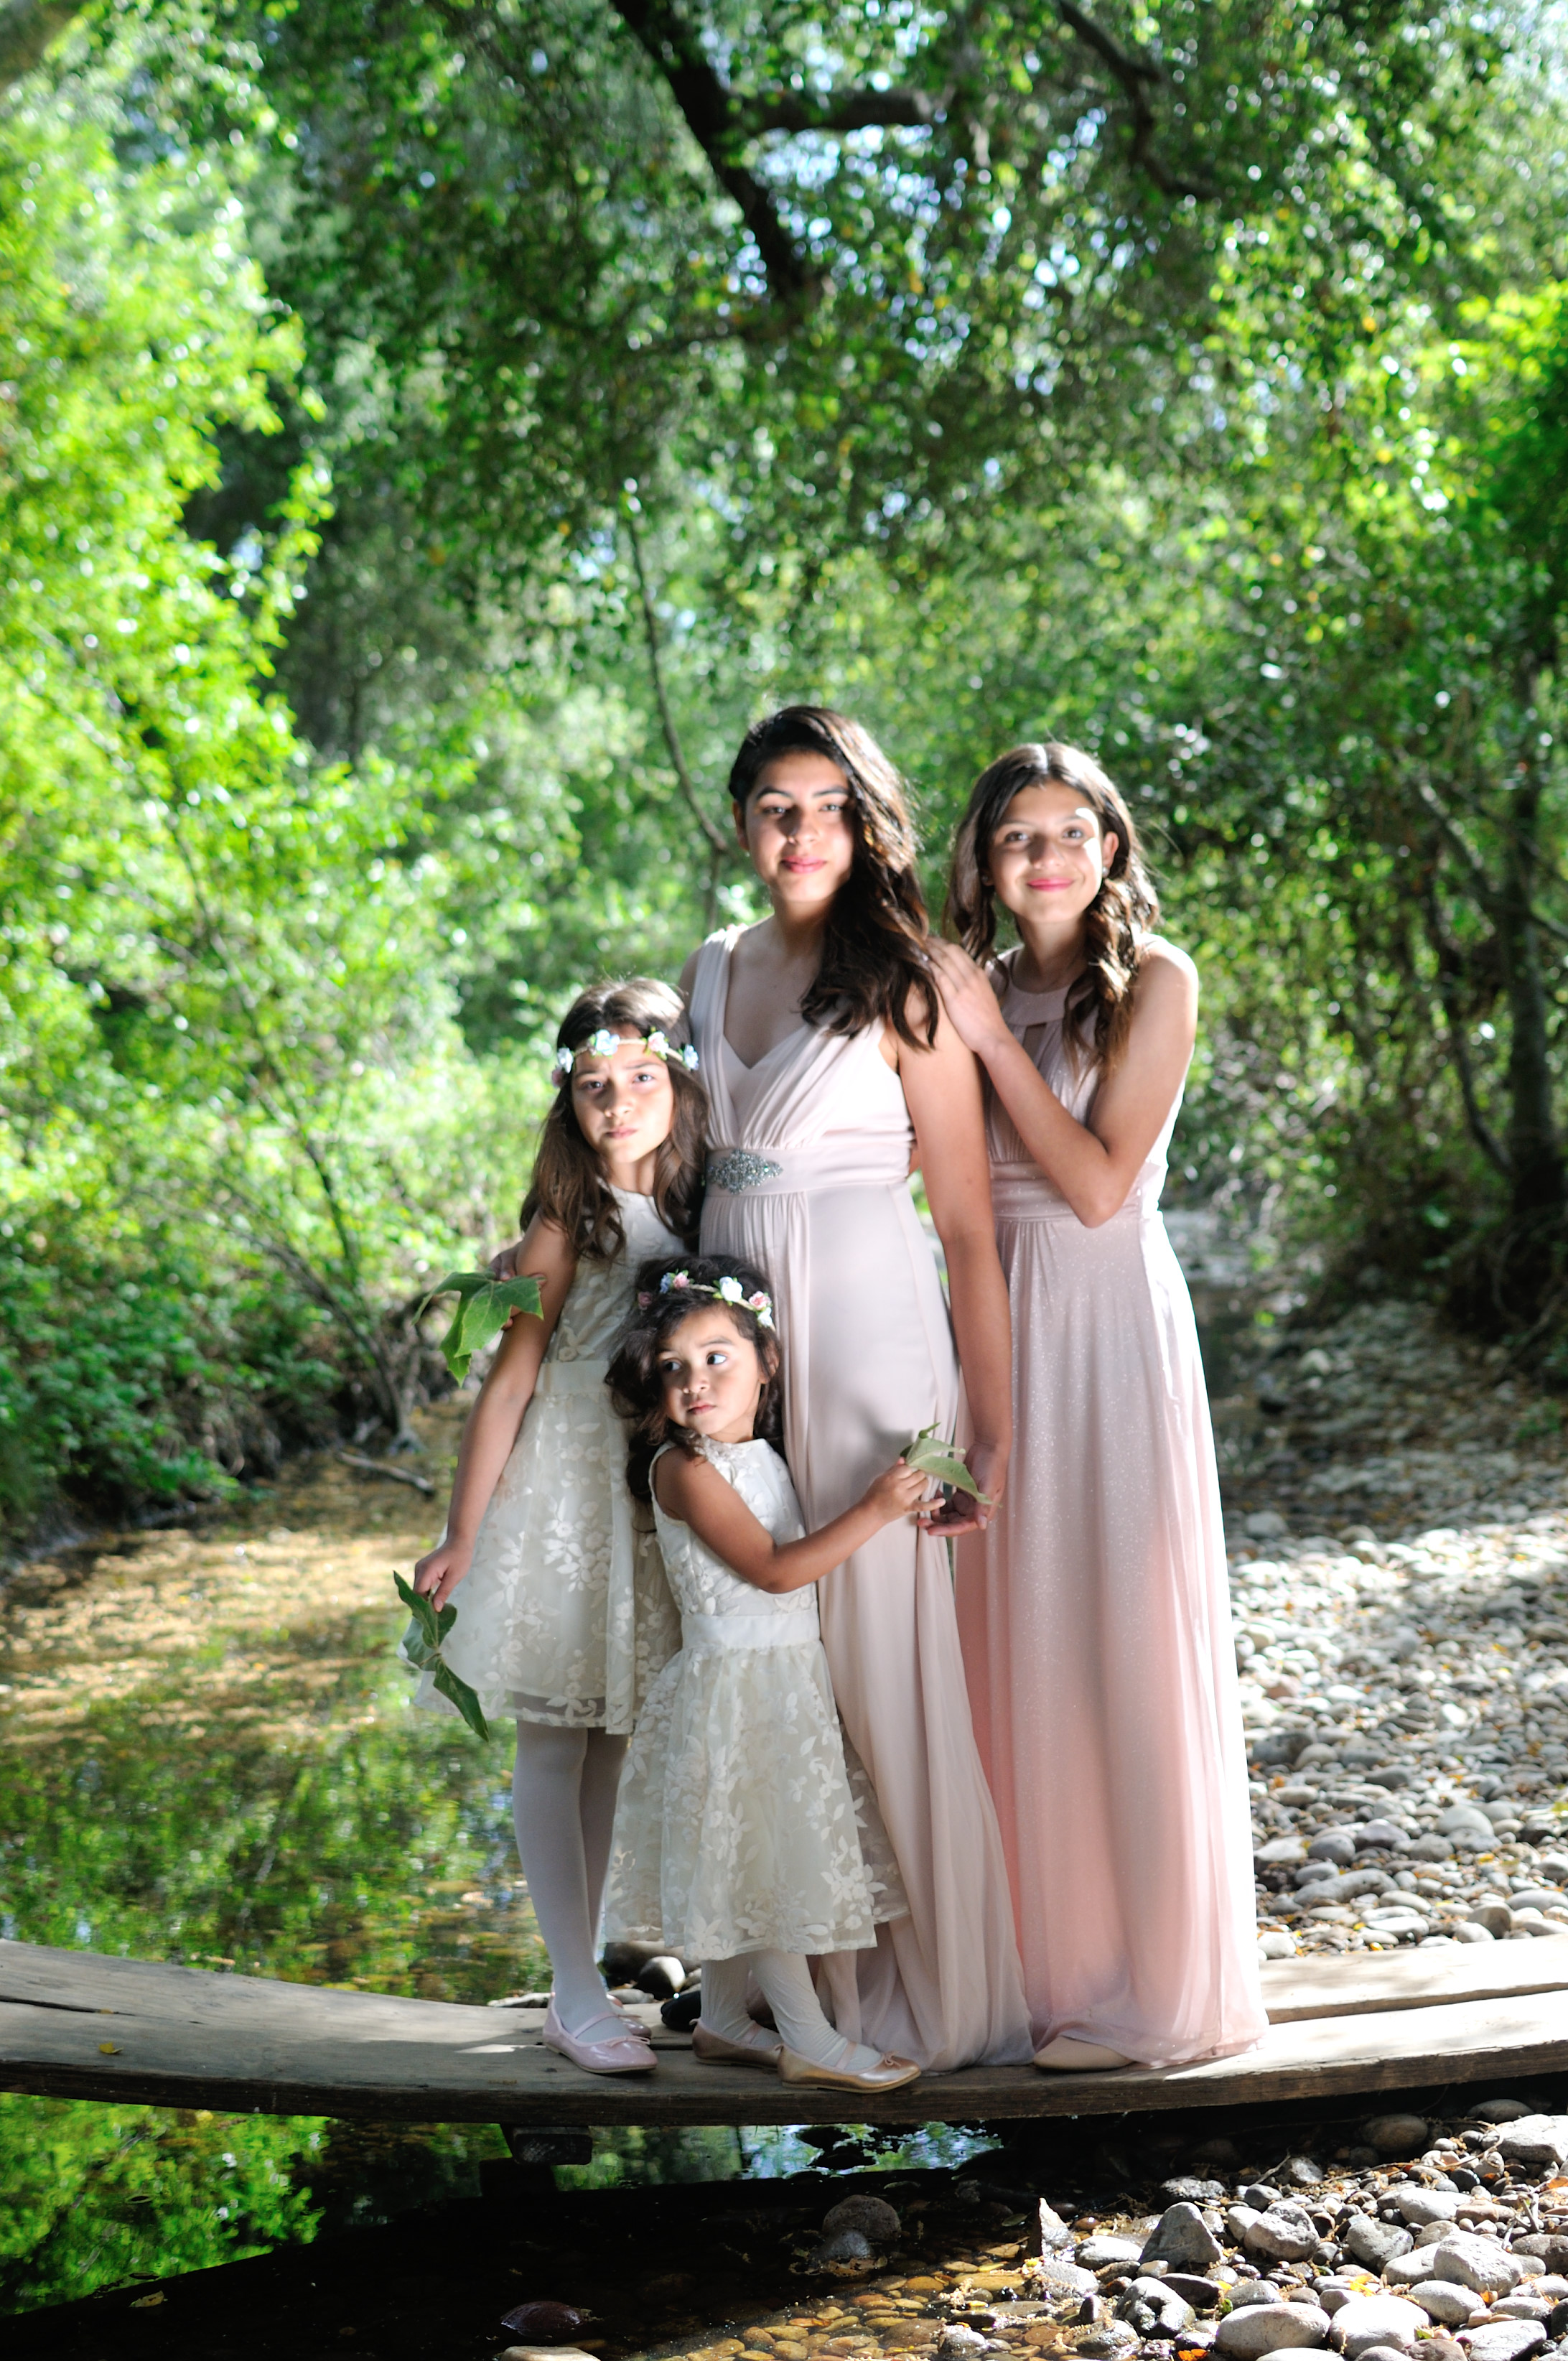 Vasquez Family2356 by maria pablo.JPG